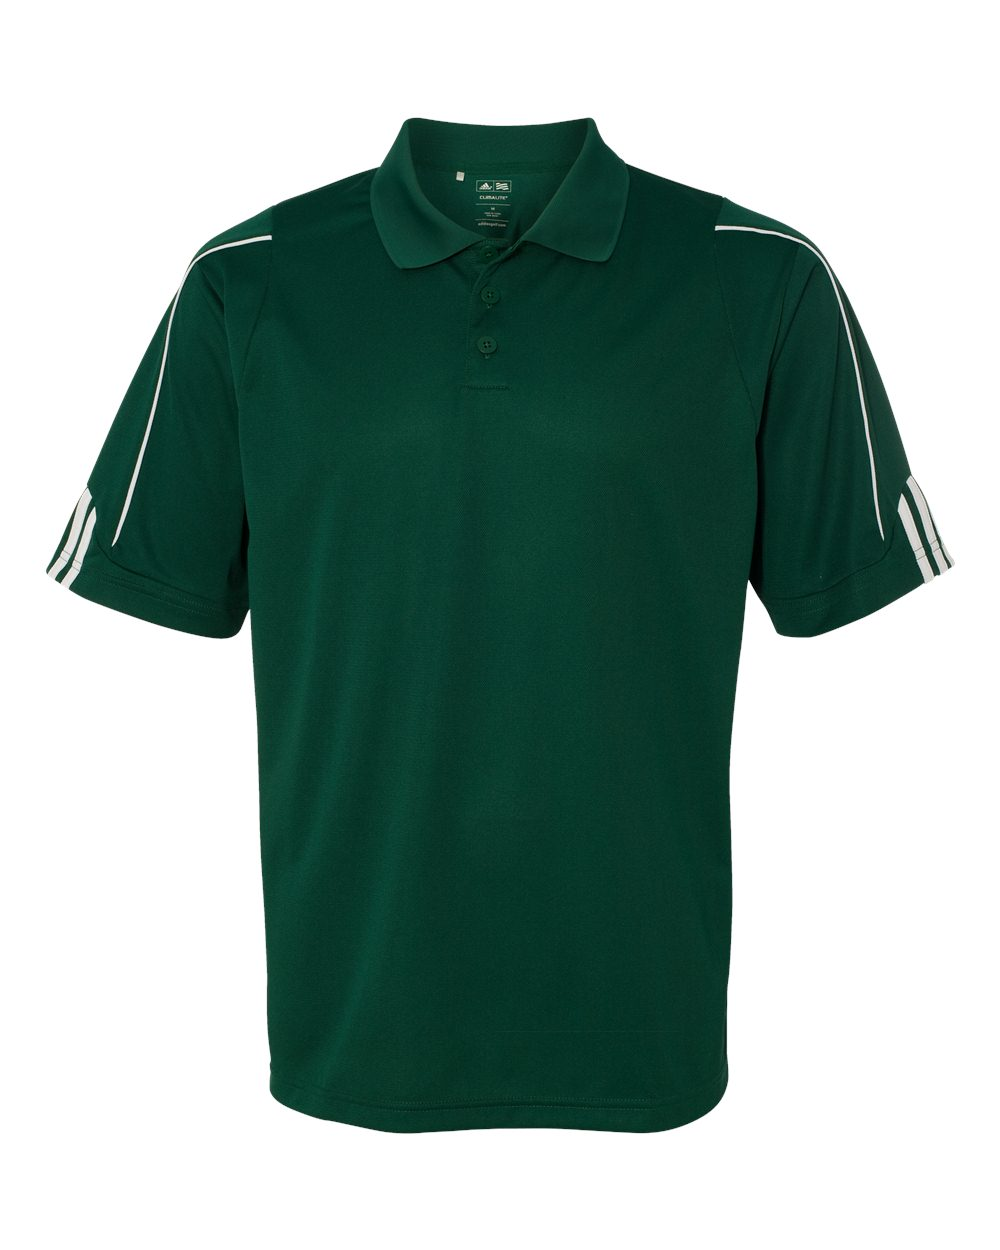 Adidas-Mens-Climalite-3-Stripes-Cuff-Sport-Shirt-A76-up-to-4XL miniature 9